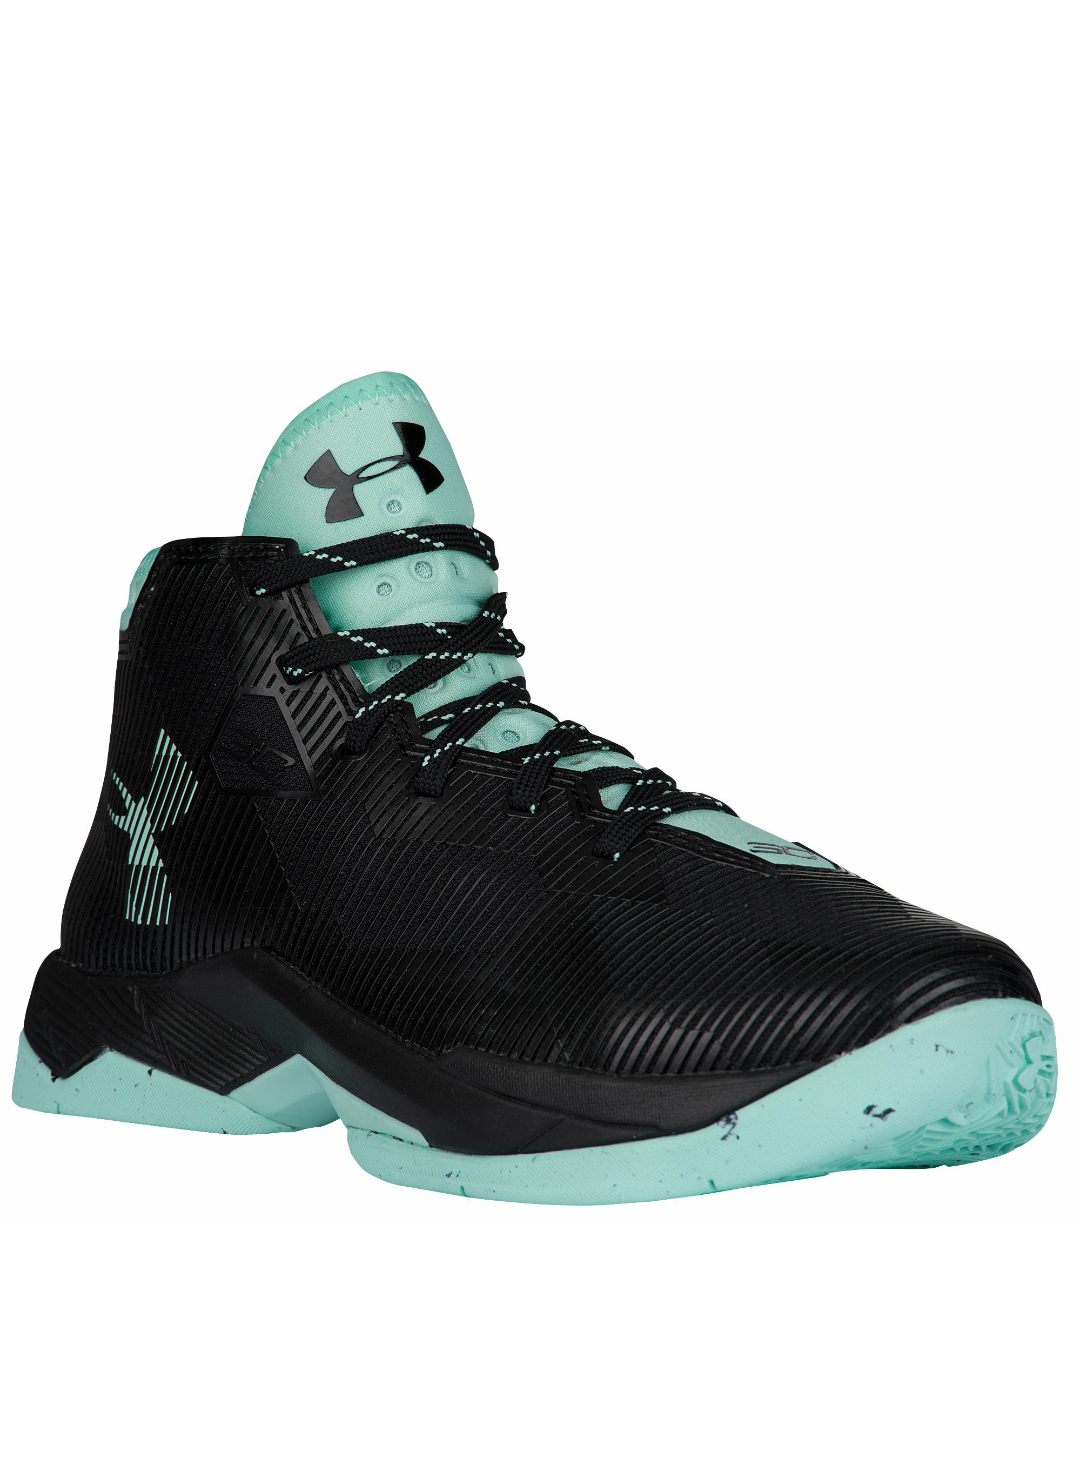 26 Best LeBron James Basketball Shoes (Buyer's Guide